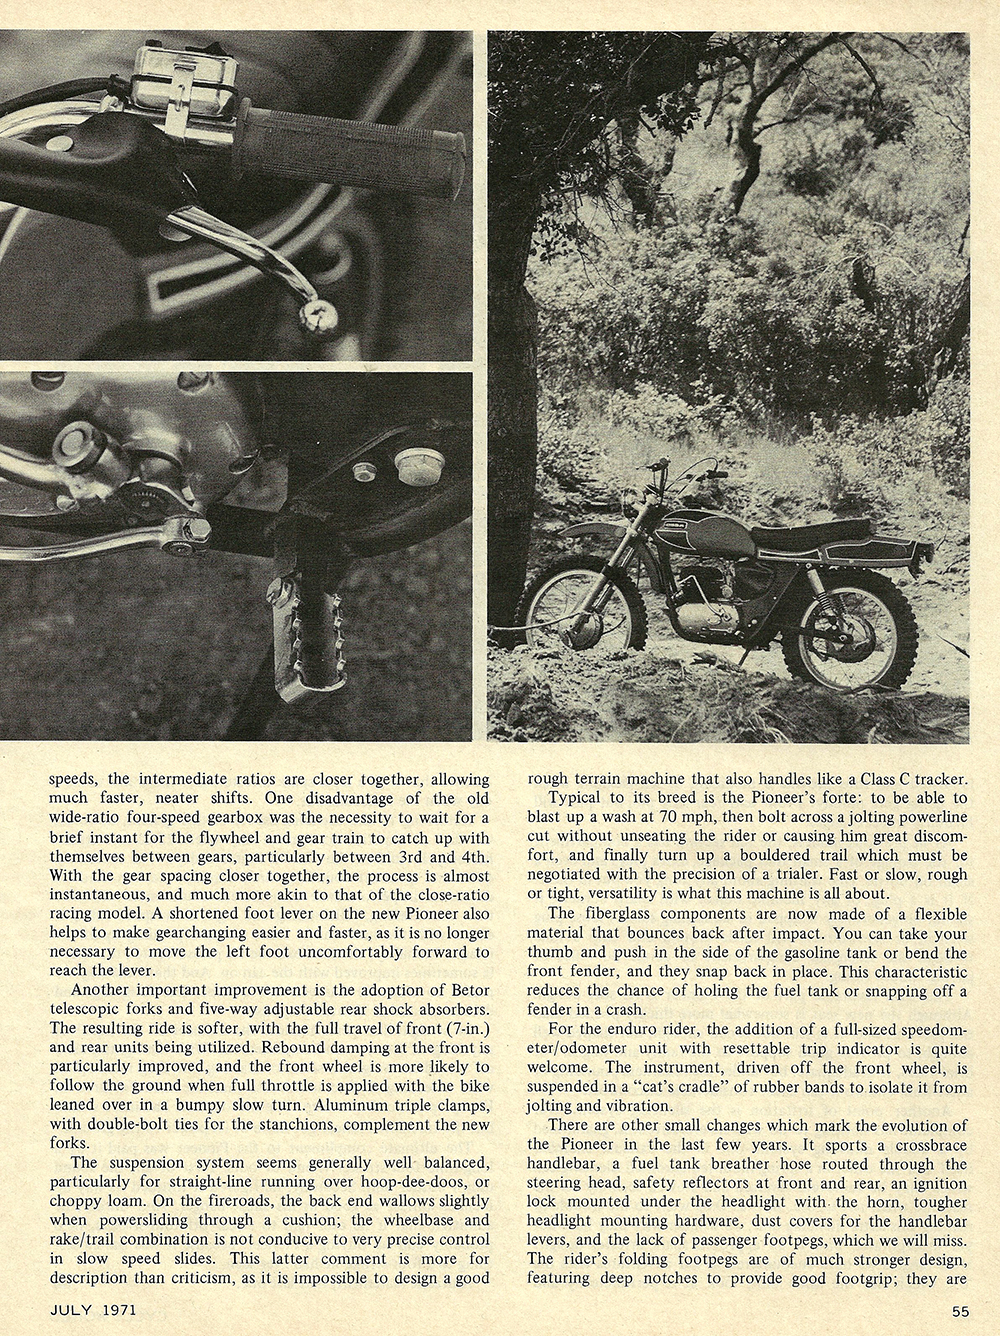 1971 Ossa Pioneer 250 road test 03.jpg